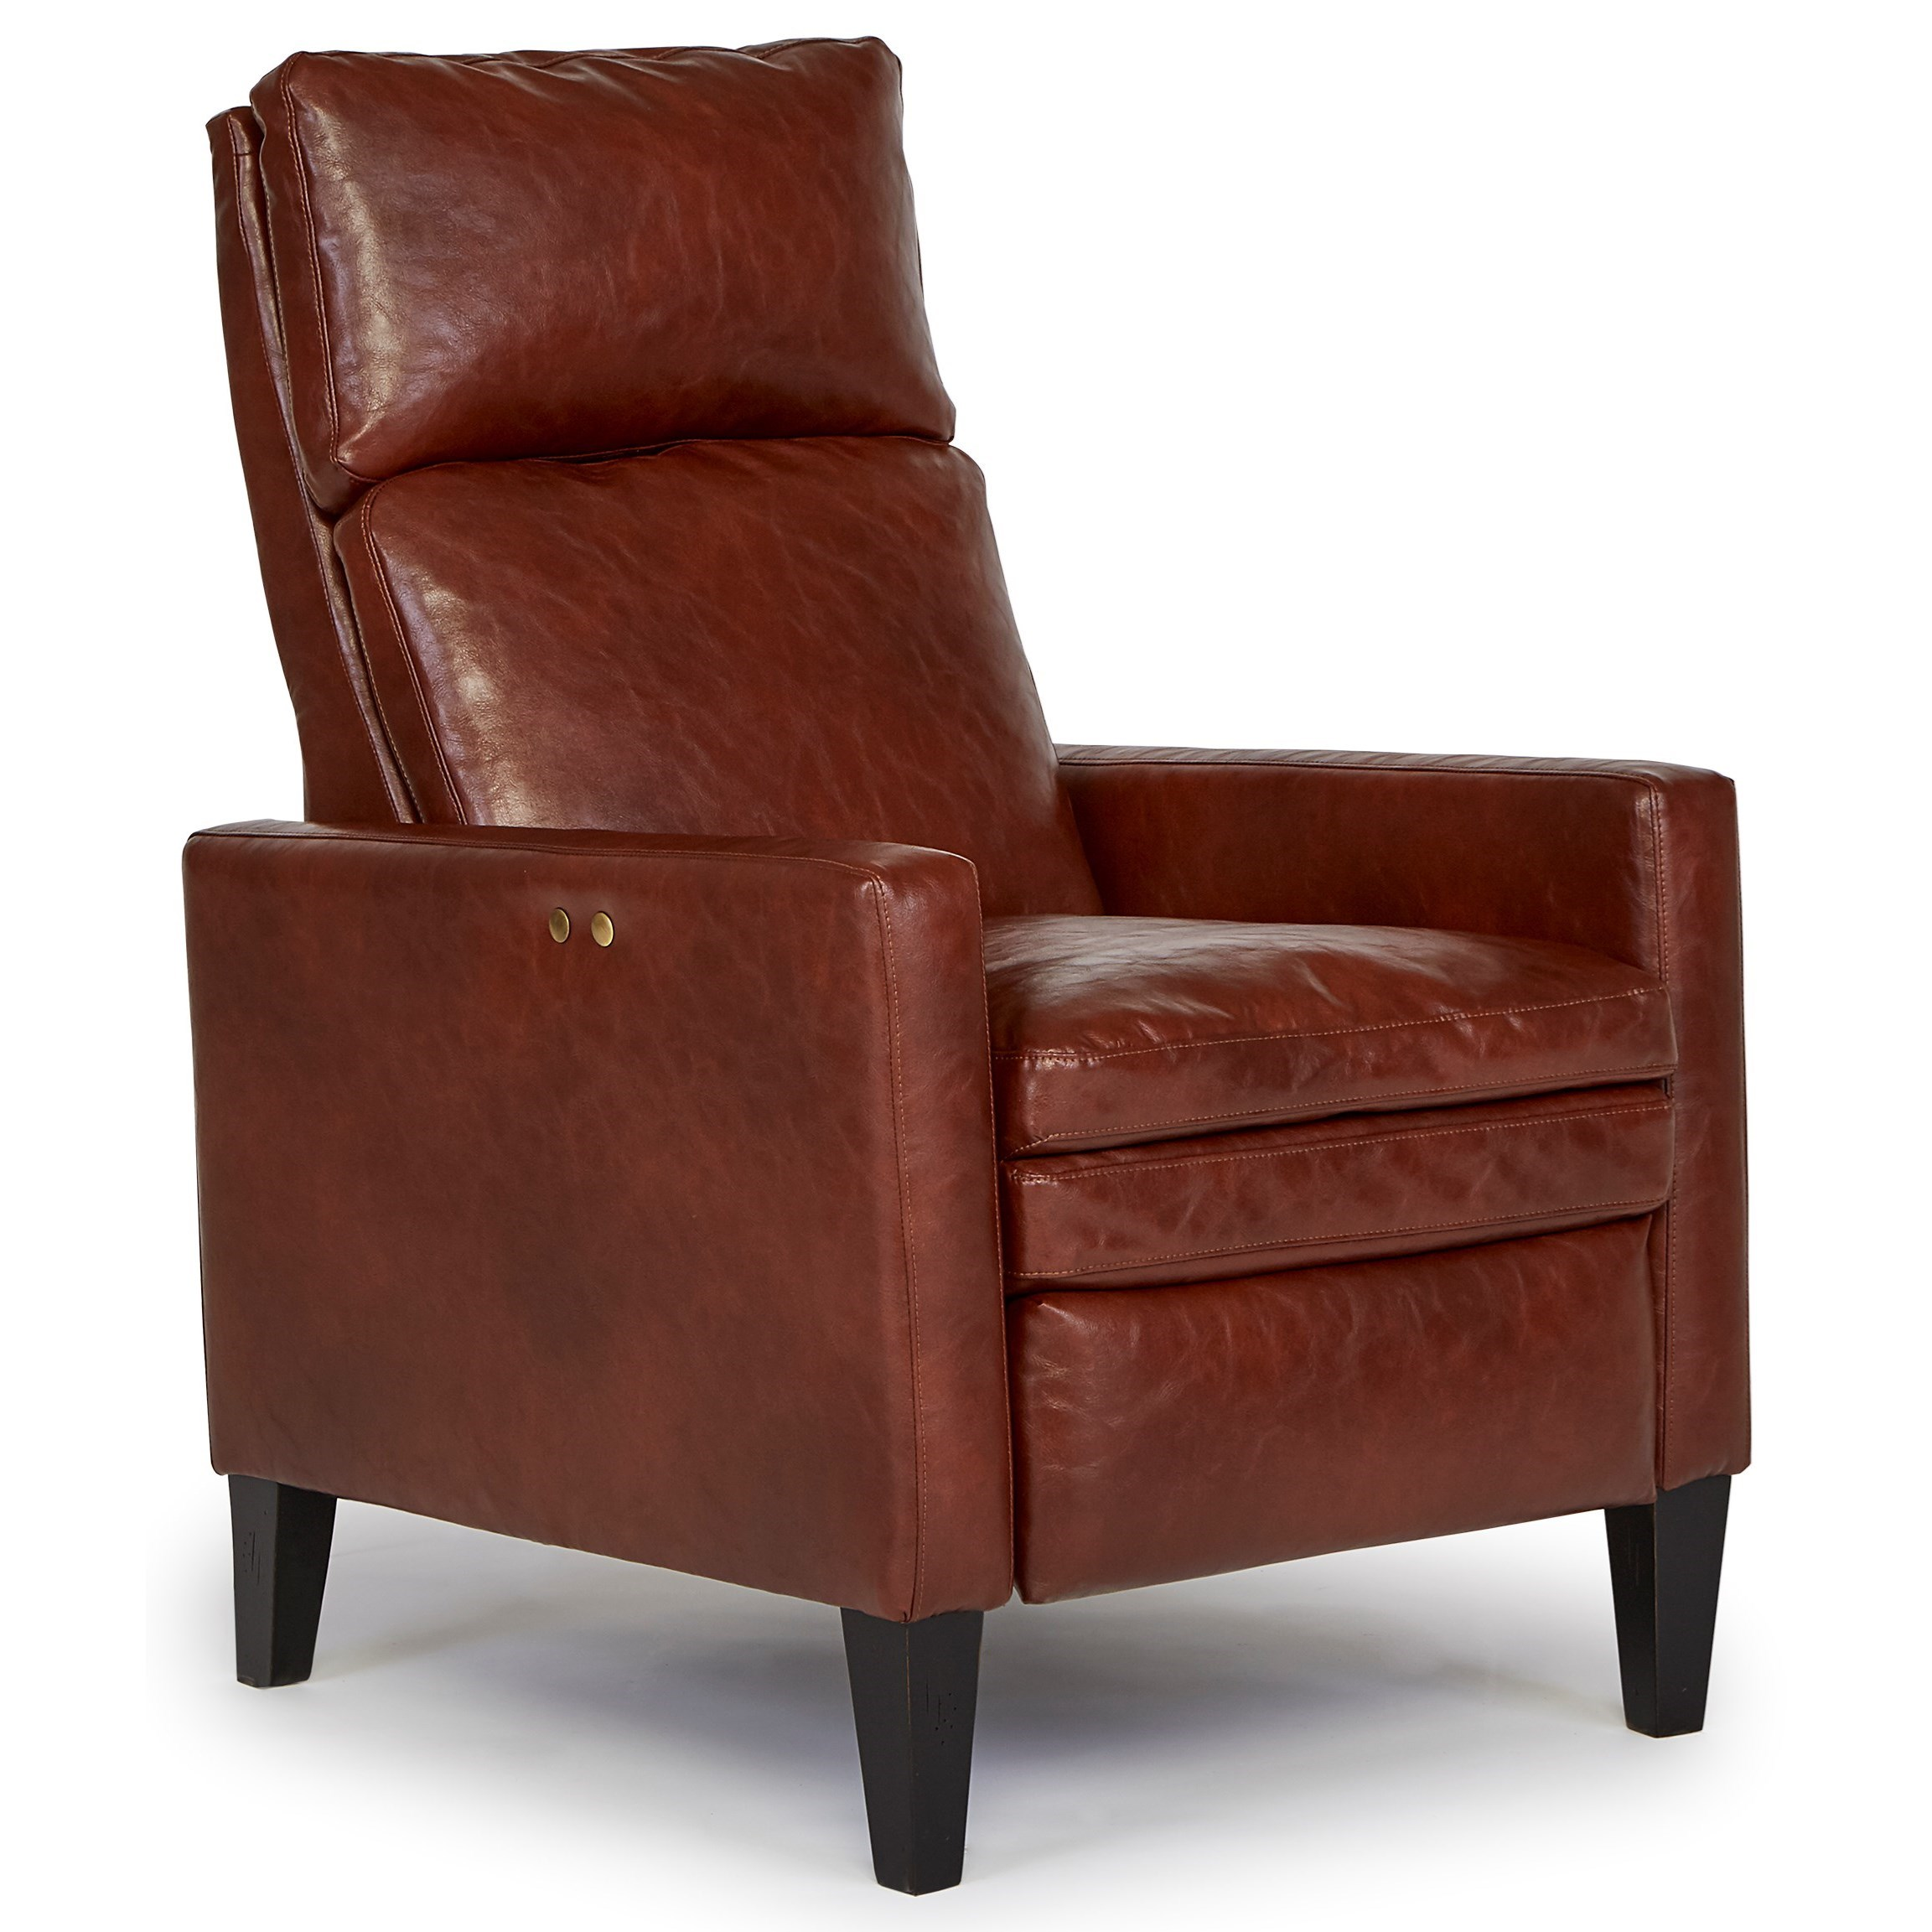 Best home furnishings pushback recliners 1l10u myles high for Best furniture for home